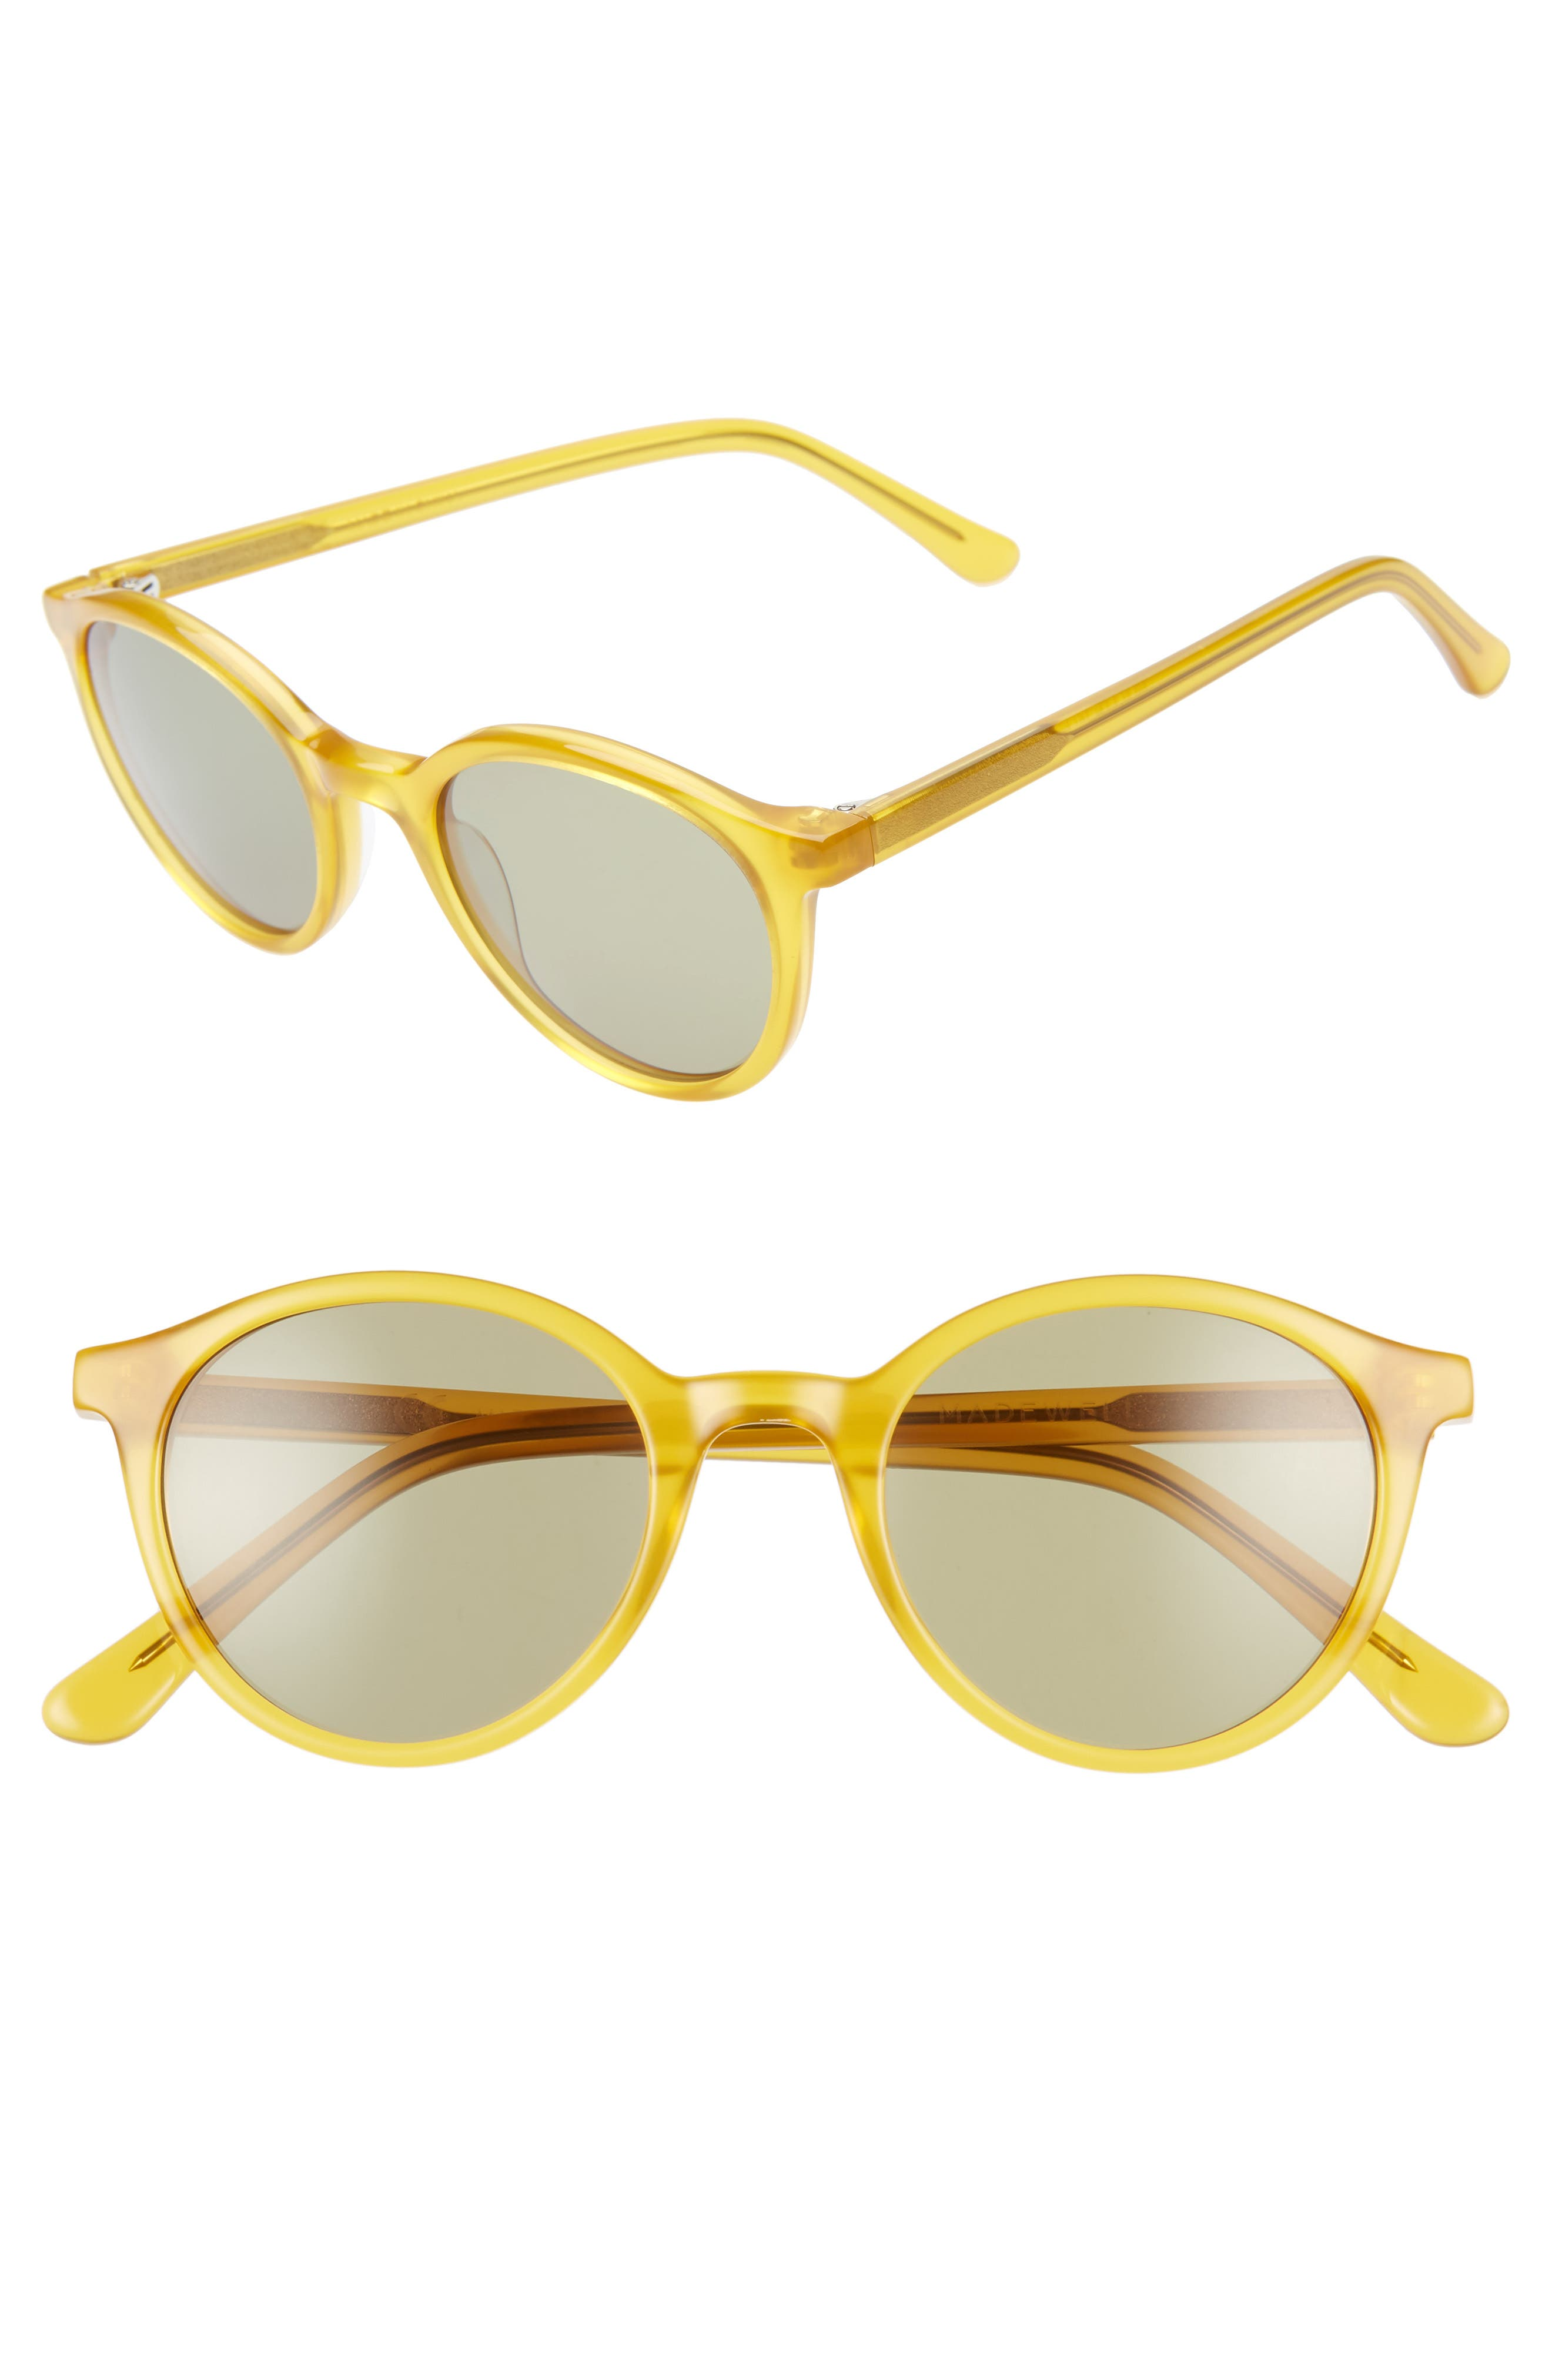 Madewell Layton 4m Round Sunglasses - Frosted Bronze/ Leaf